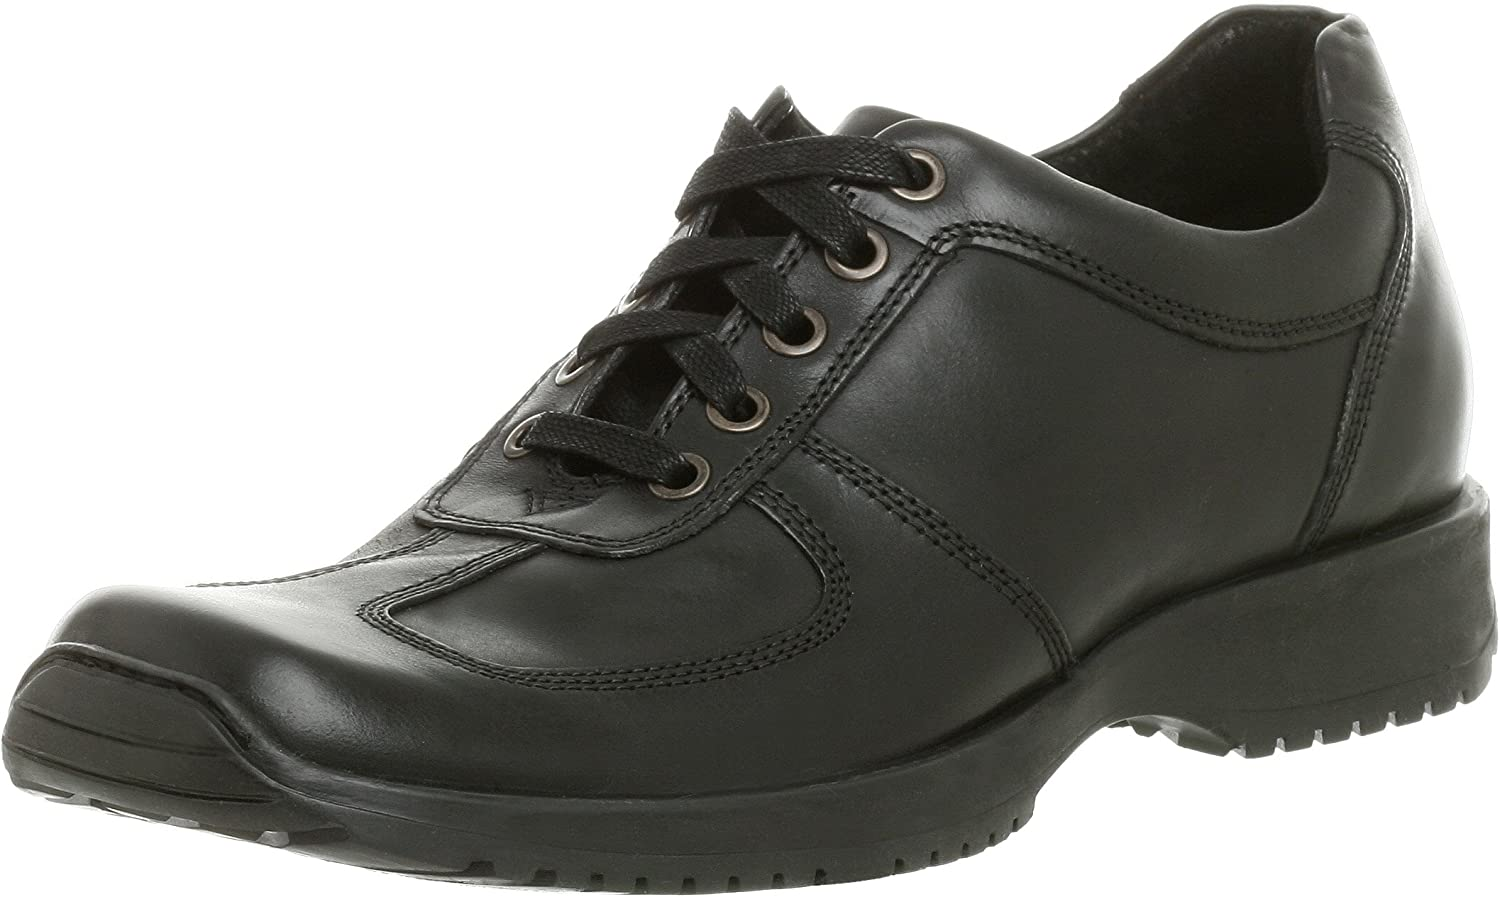 Kenneth Cole Reaction Men's Getting Hot Oxford,Black,11.5 M